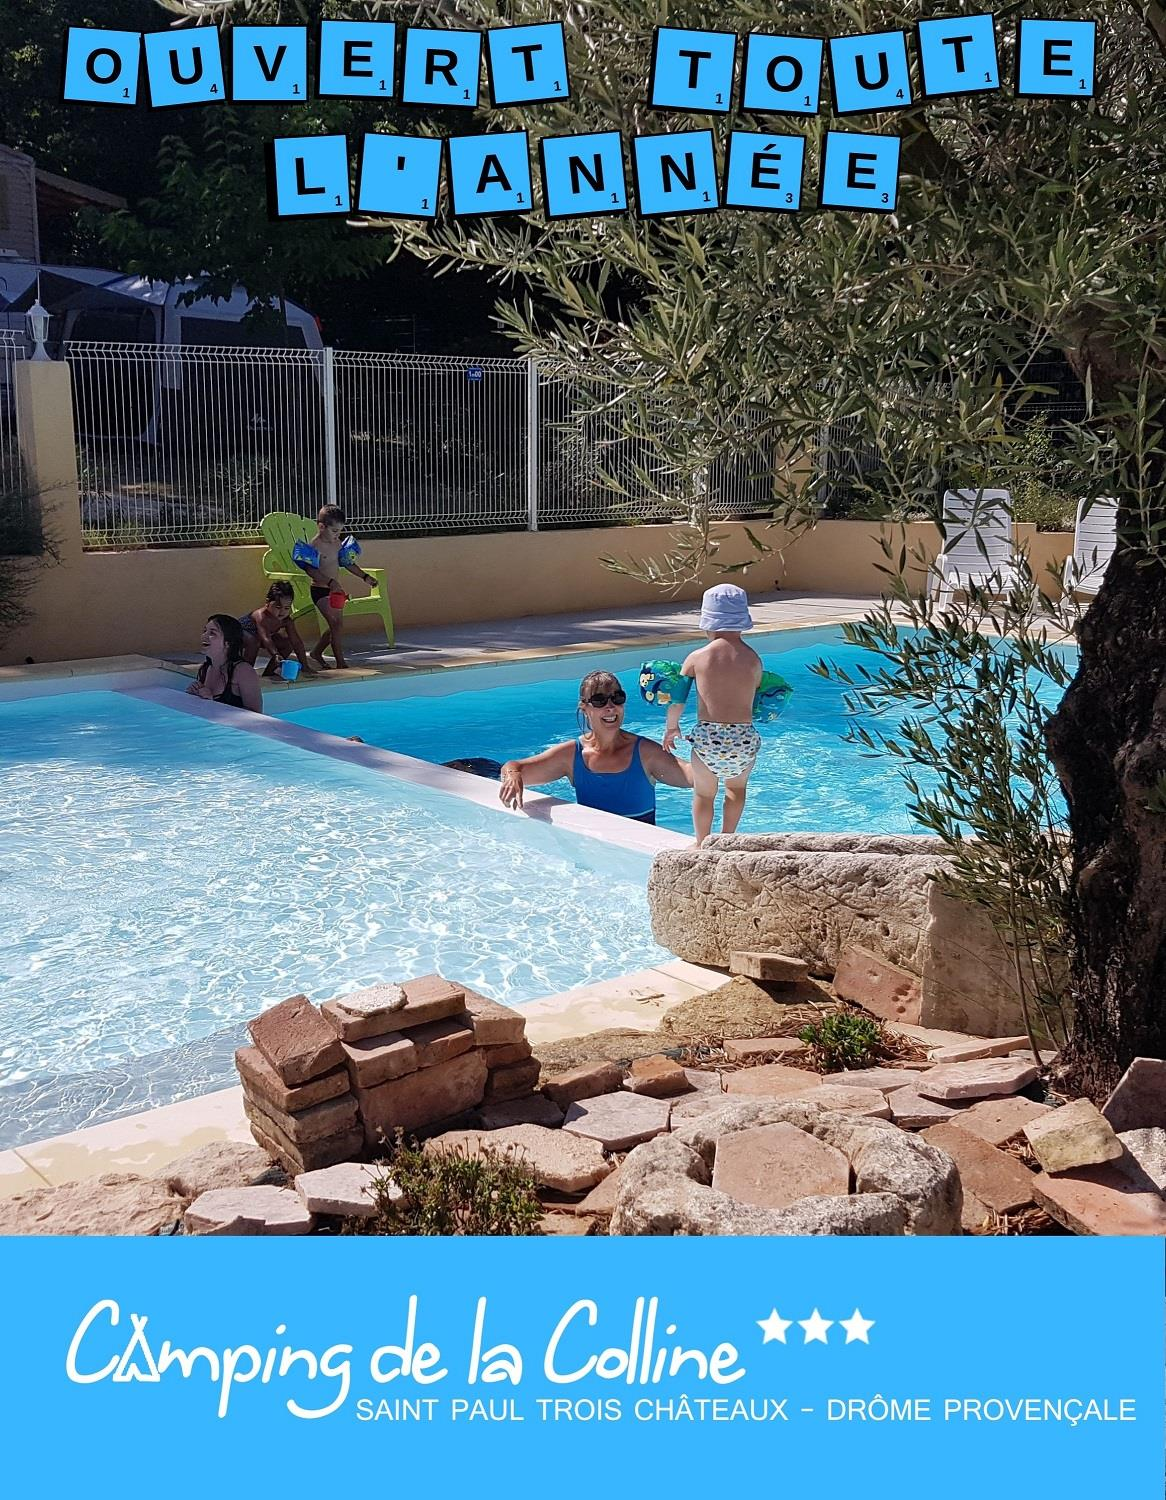 Establishment Camping De La Colline - Saint Paul Trois Chateaux